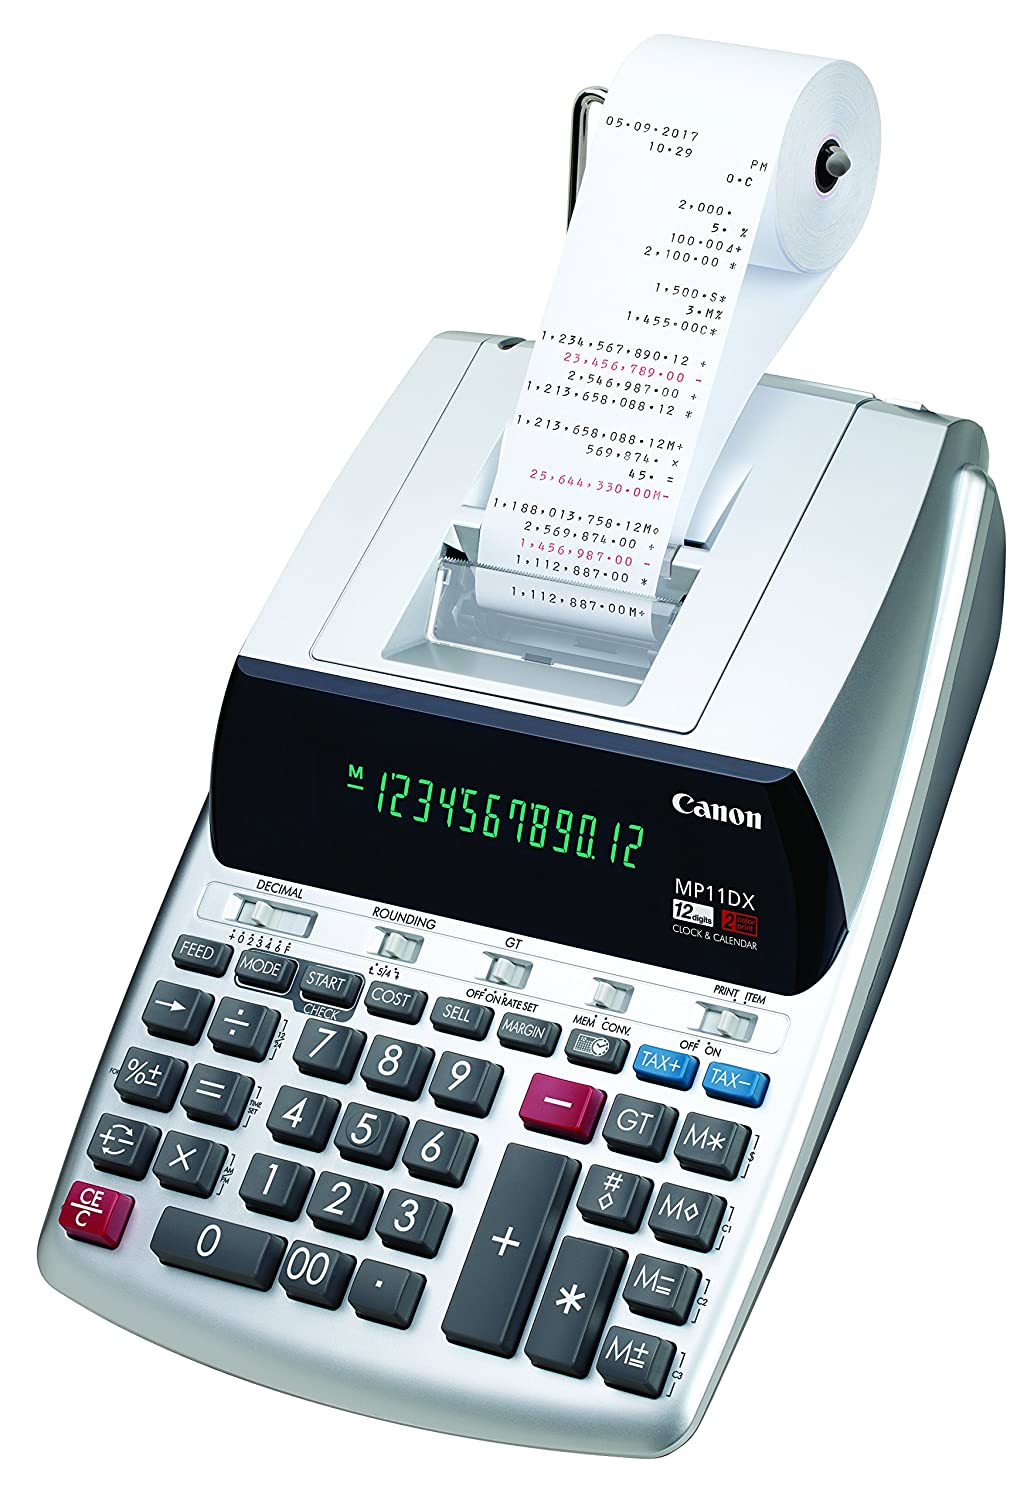 Amazon.com: Canon MP11DX-2 - calculadora con impresora para ...